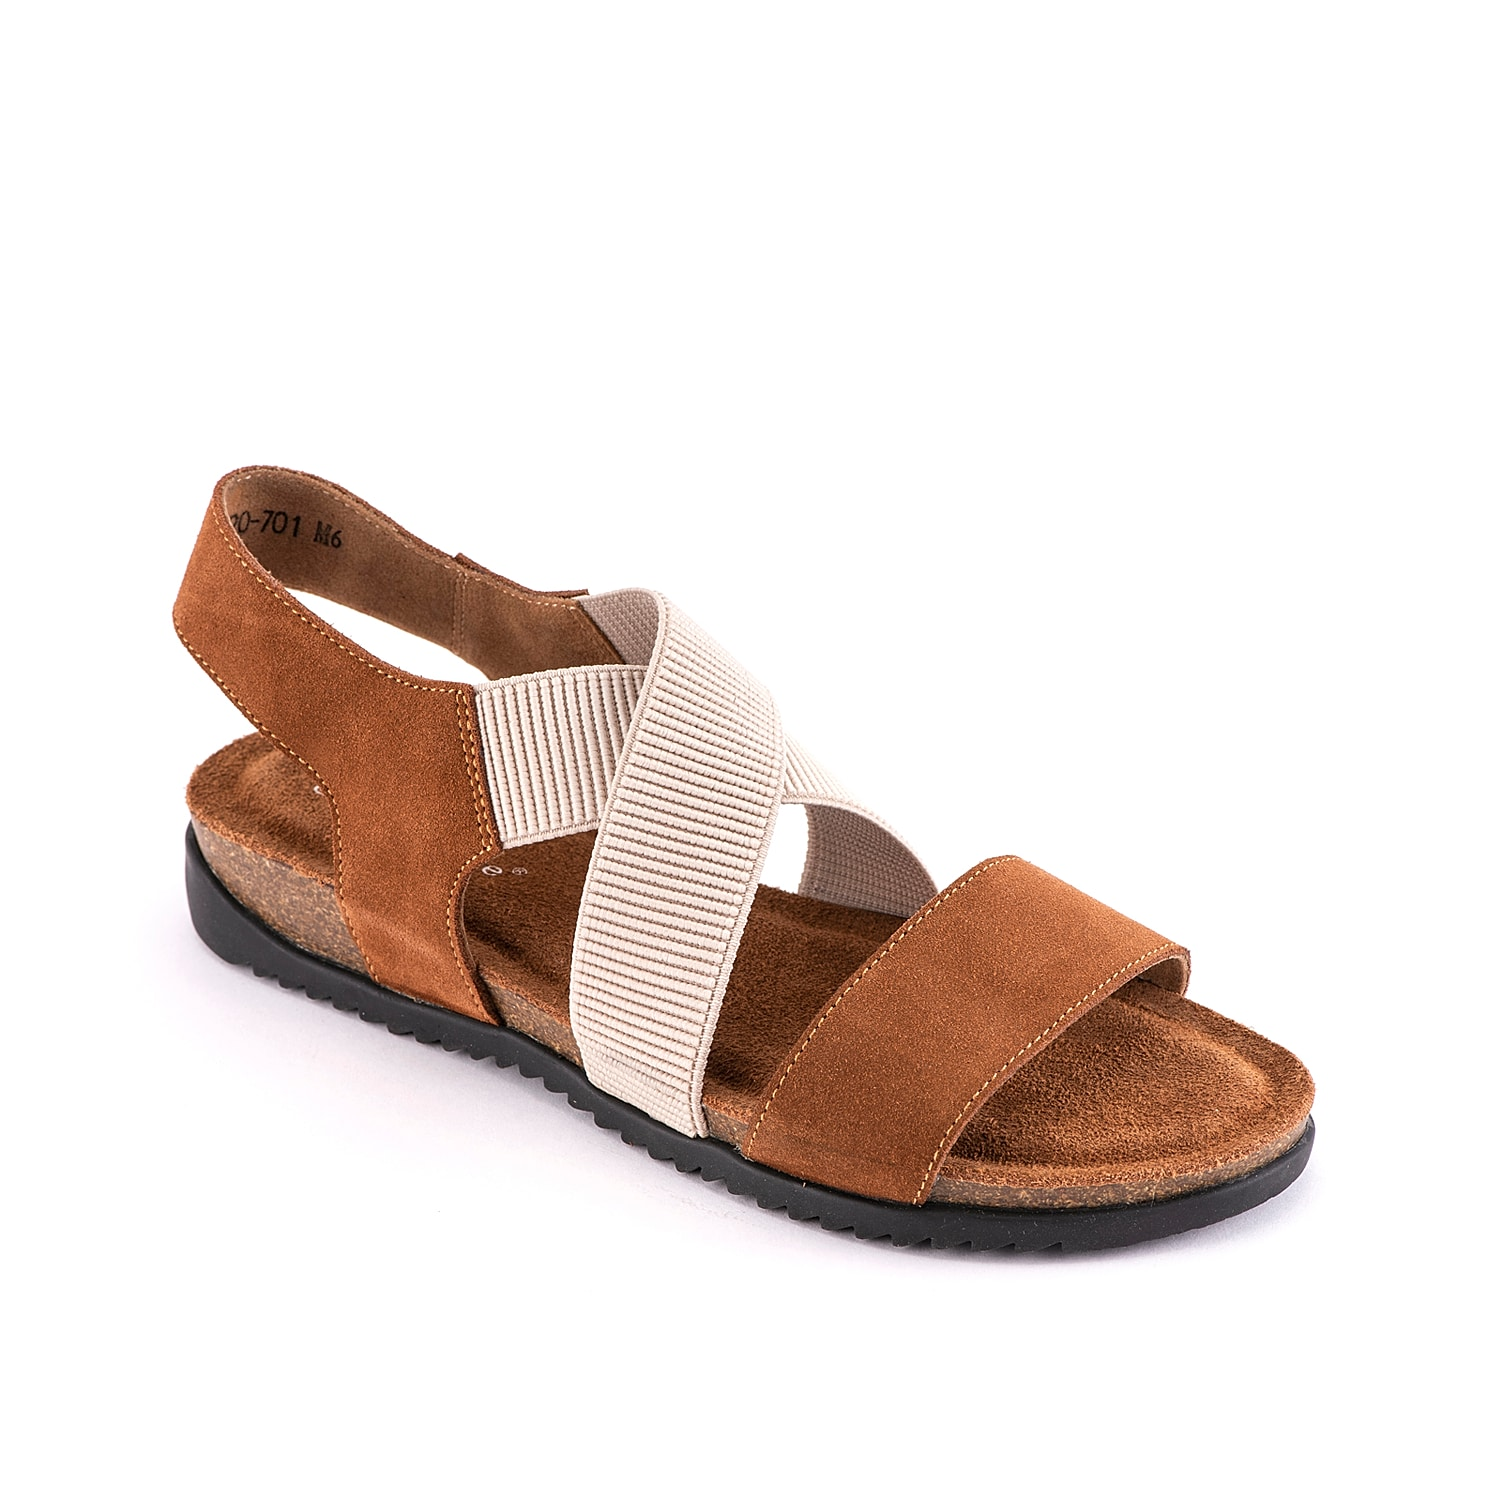 Pull together your favorite looks when wearing the Clay sandal from David Tate. This silhouette is fashioned with a suede upper and elastic crisscross straps for an easy on-and-off!